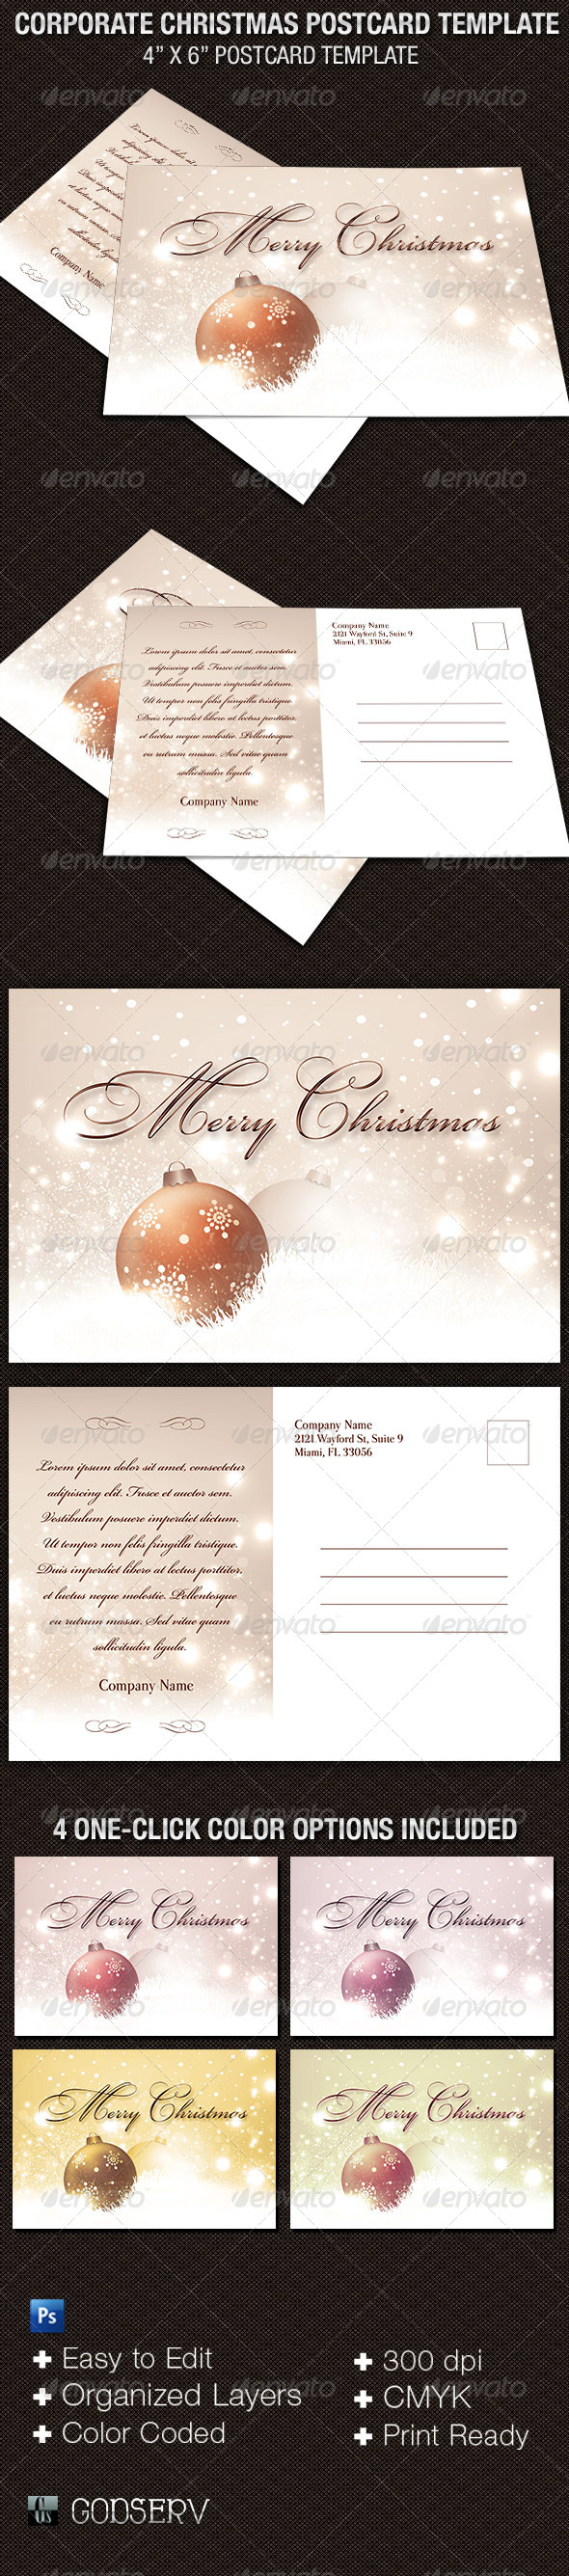 Corporate Christmas Postcard Template  - Holidays Events